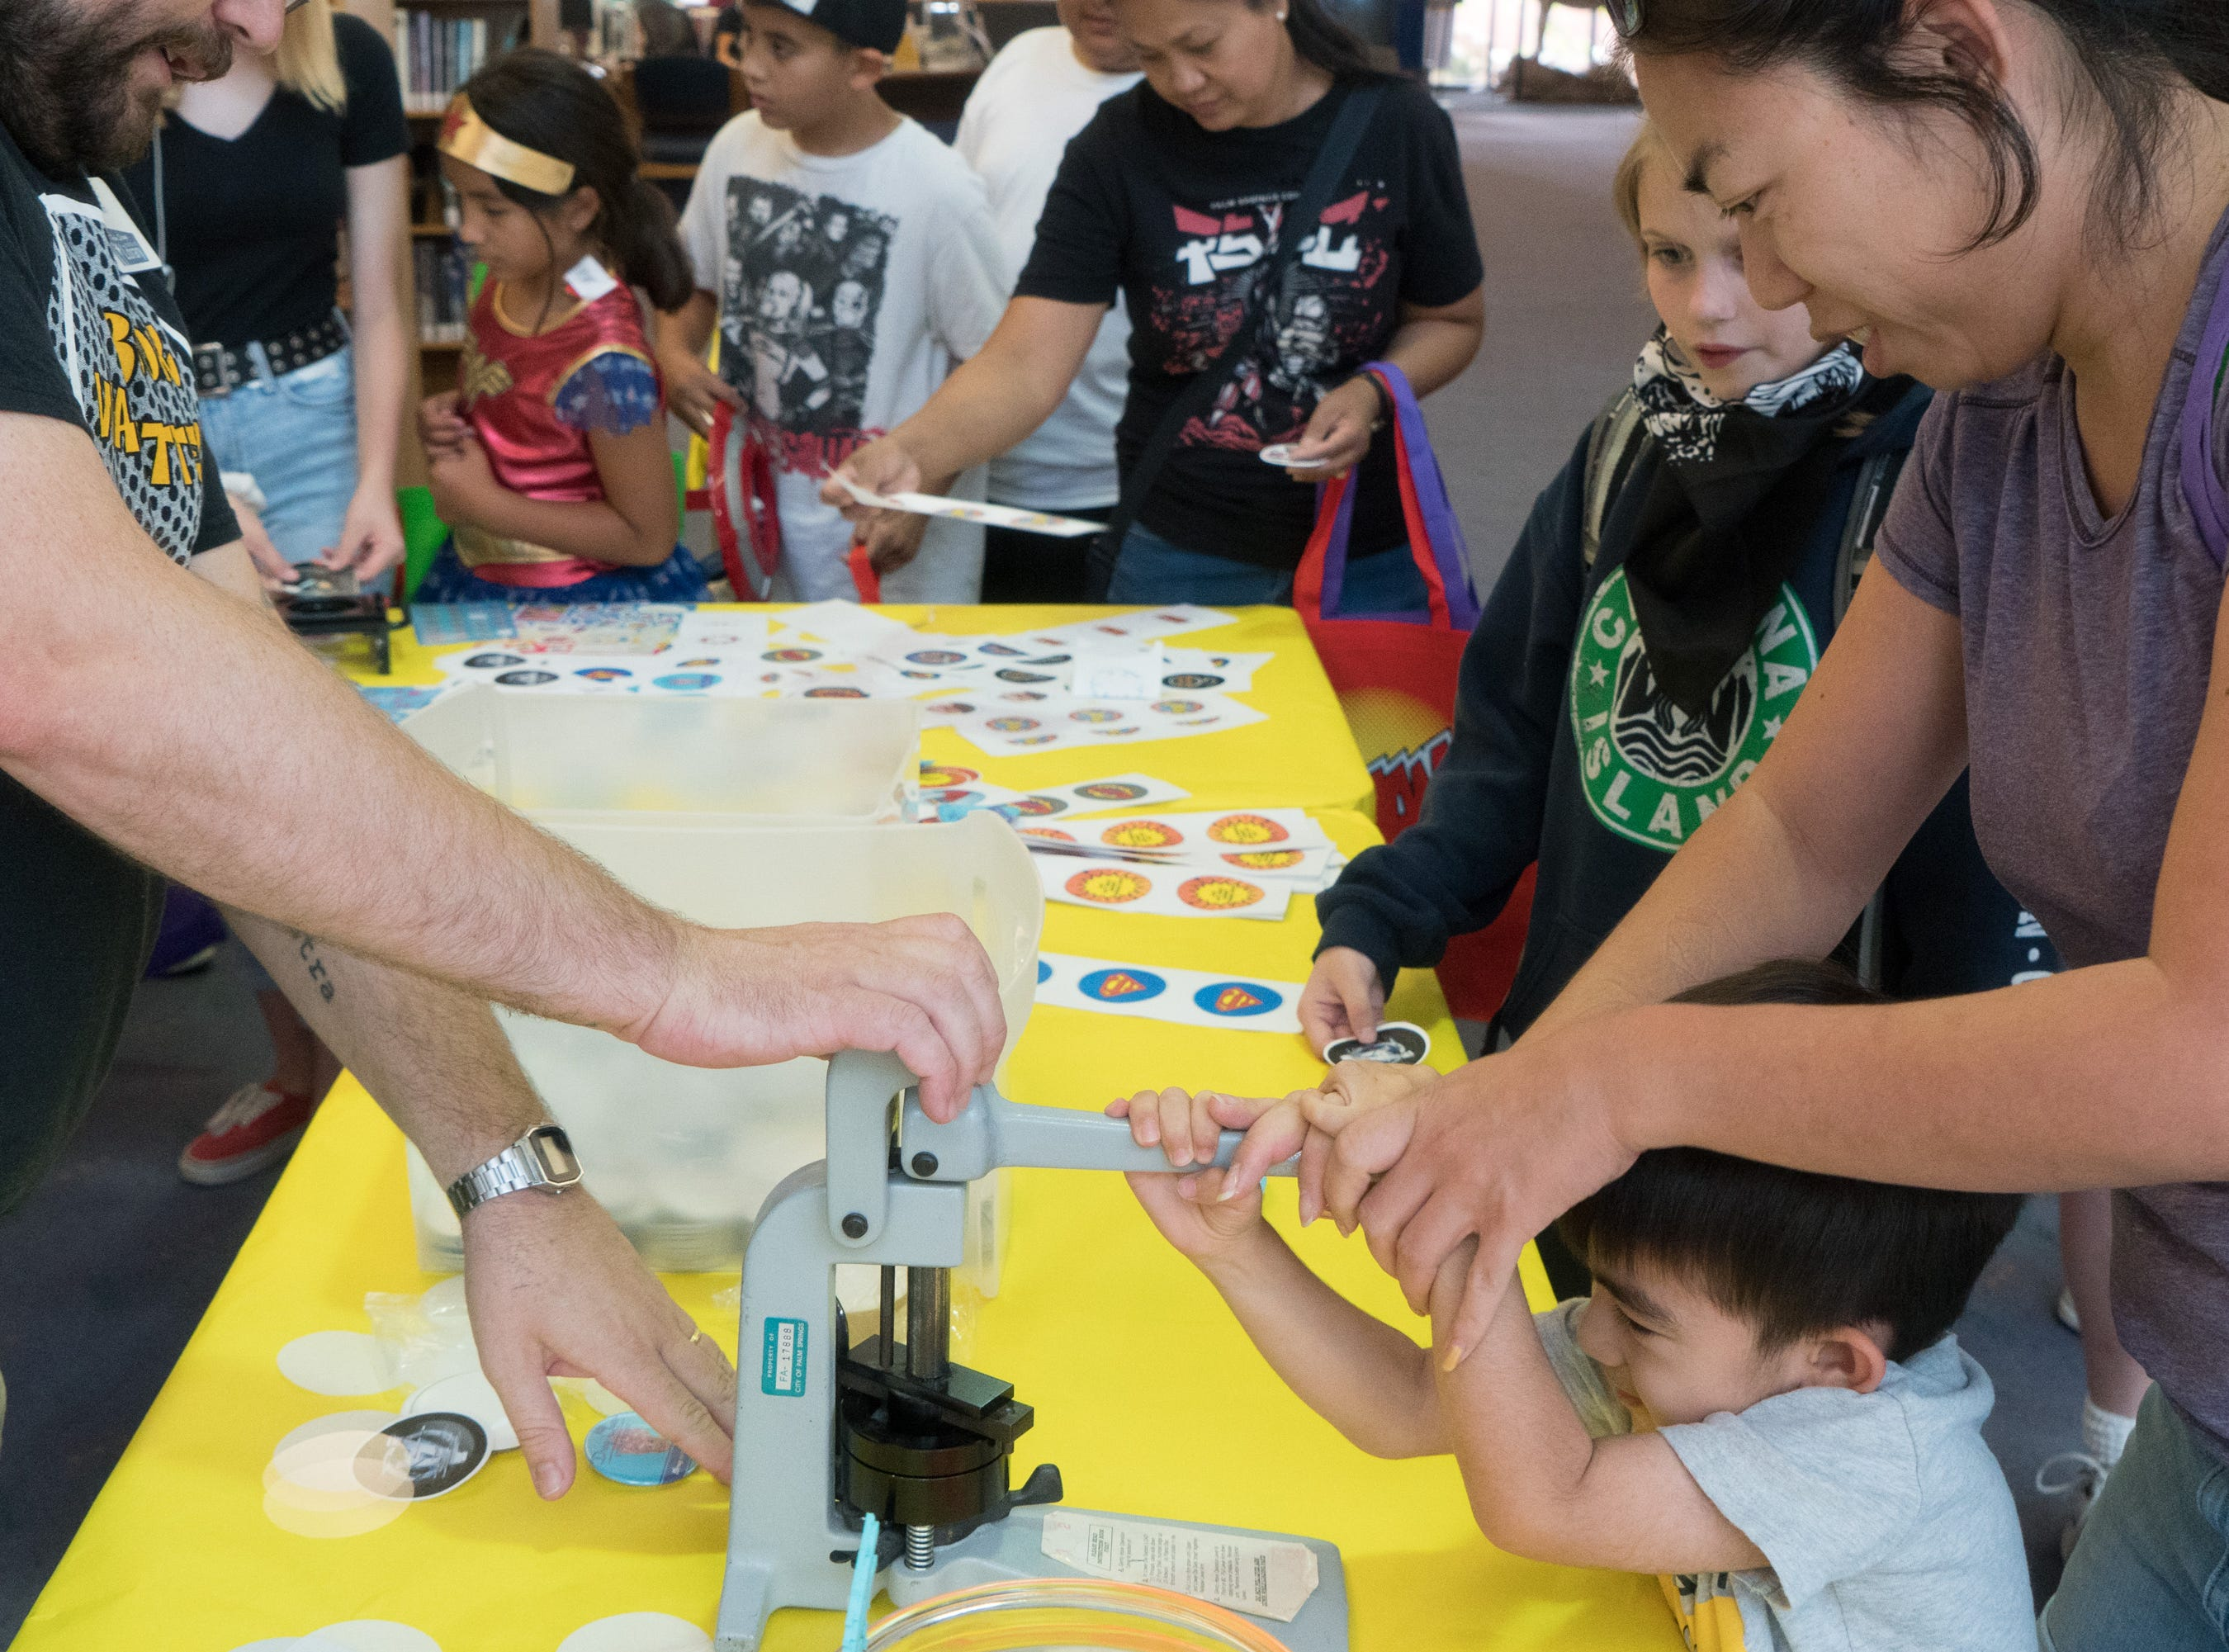 Kids press buttons at one of several activity tables at the Palm Springs Public Library Comic Con, Palm Springs, Calif., May 11, 2019.